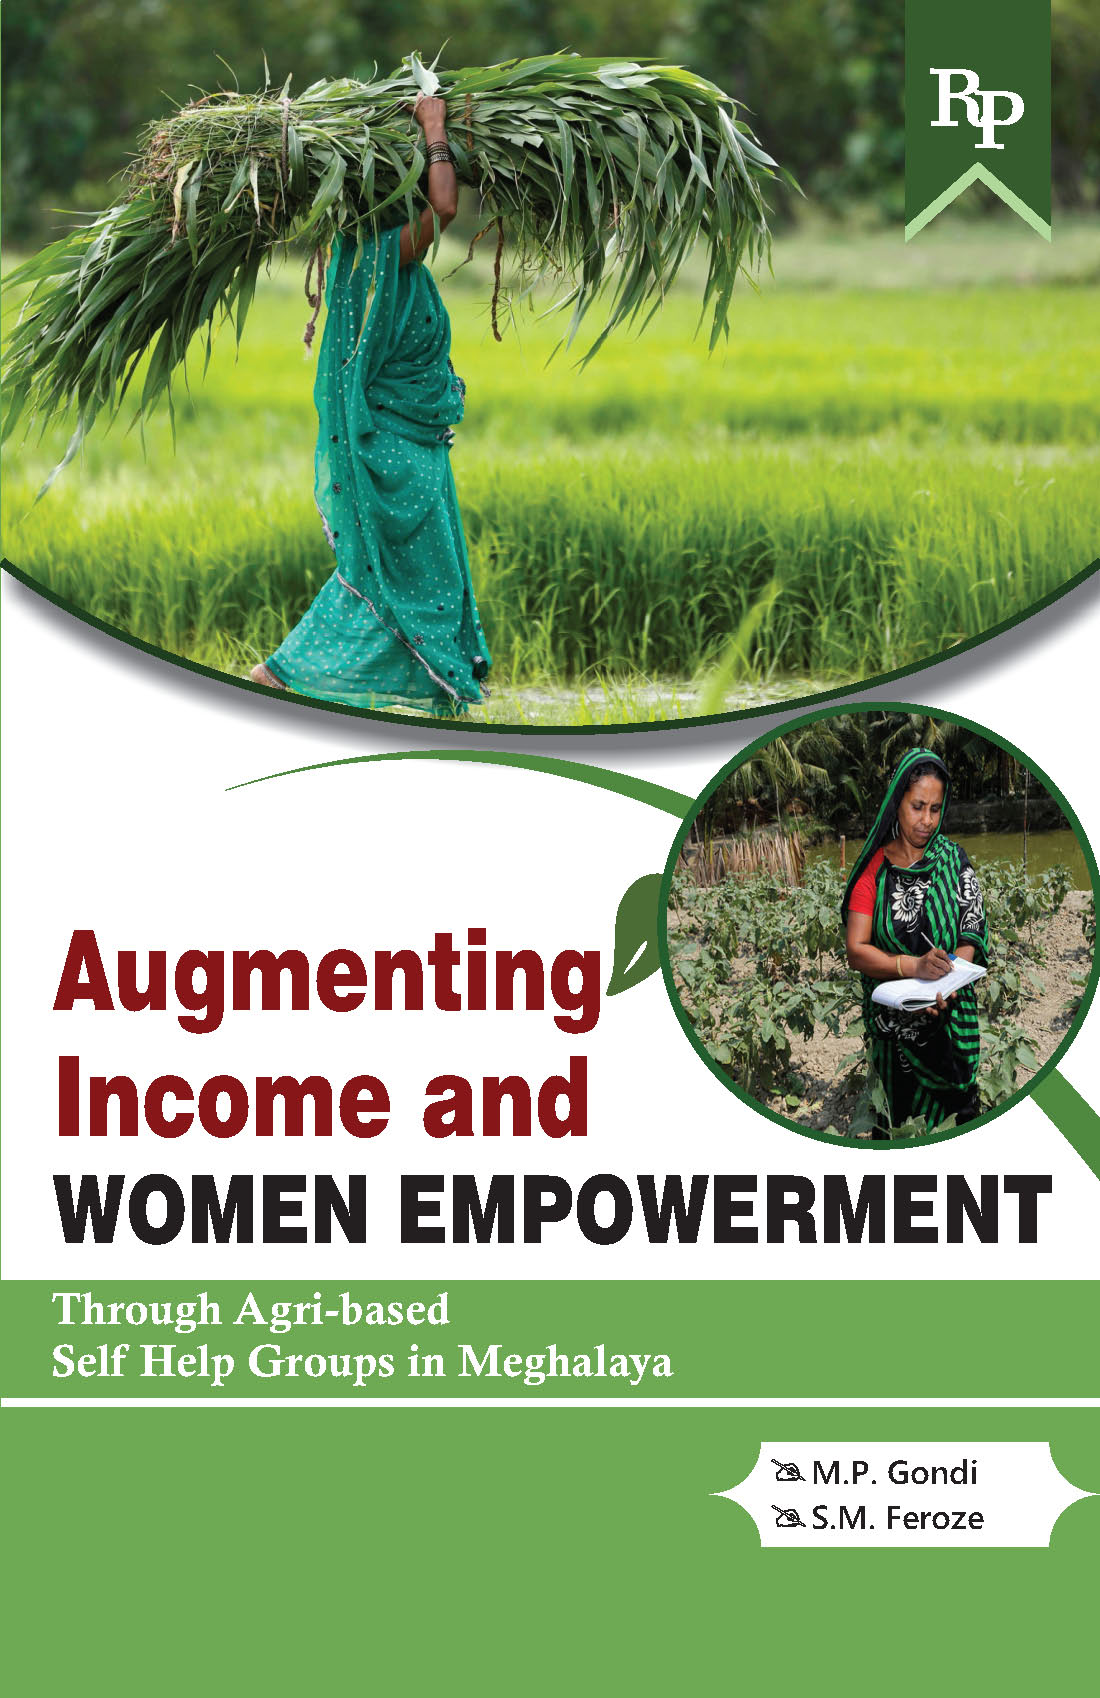 Augmenting income and Women Empowerment through Agri-based Self Help Groups in Meghalaya Cover.jpg